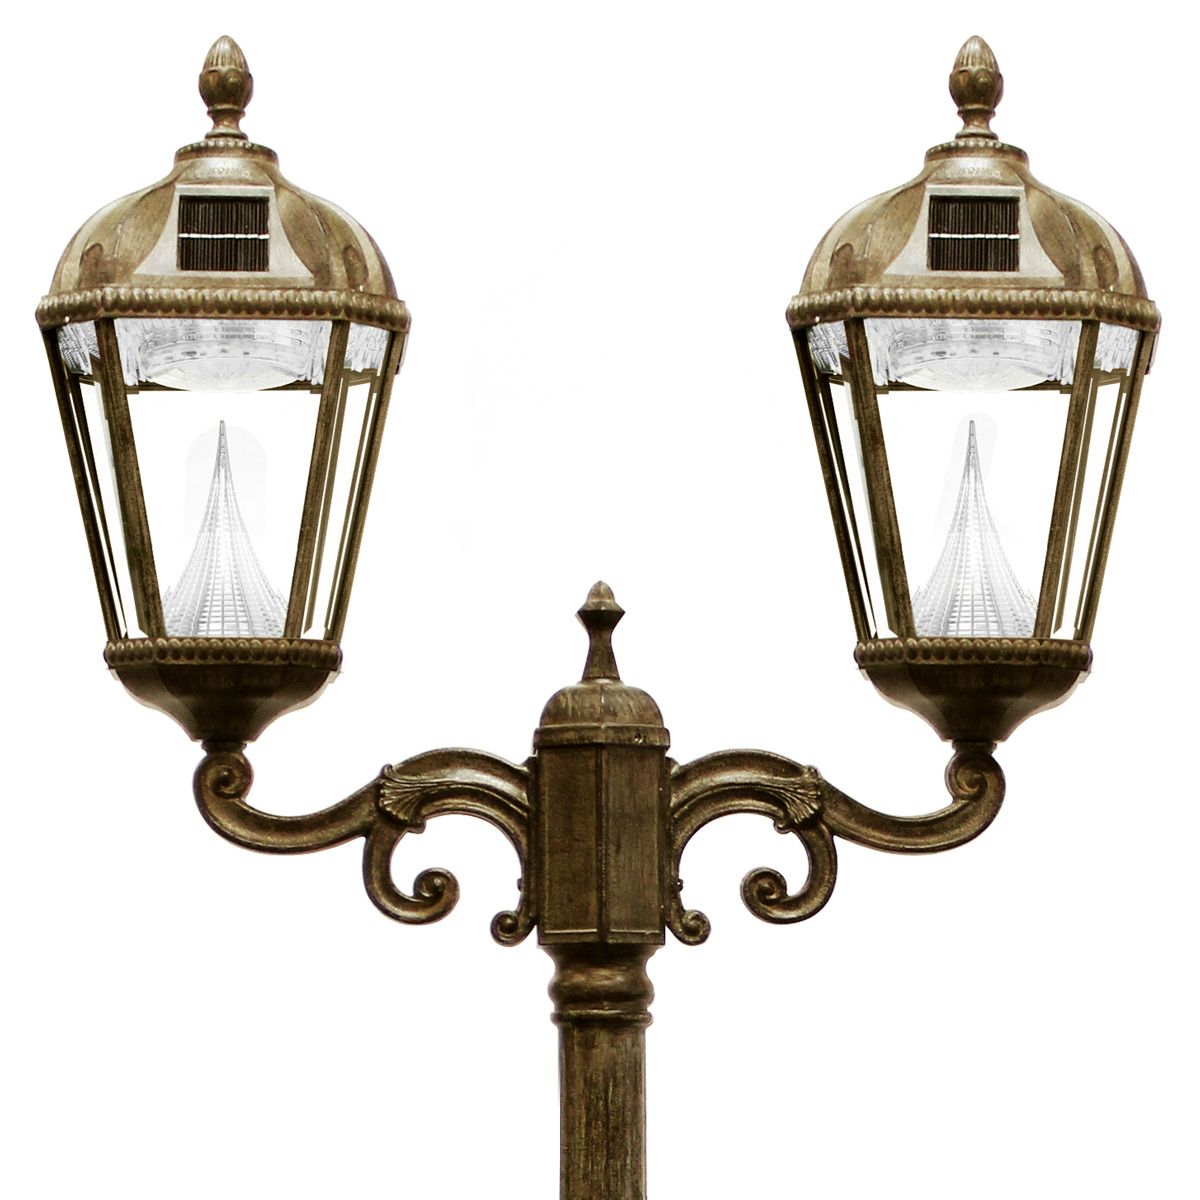 Best ideas about Lamp Post Lights . Save or Pin Royal Solar Lamp Series – Double Lamp Post GS 98D Now.